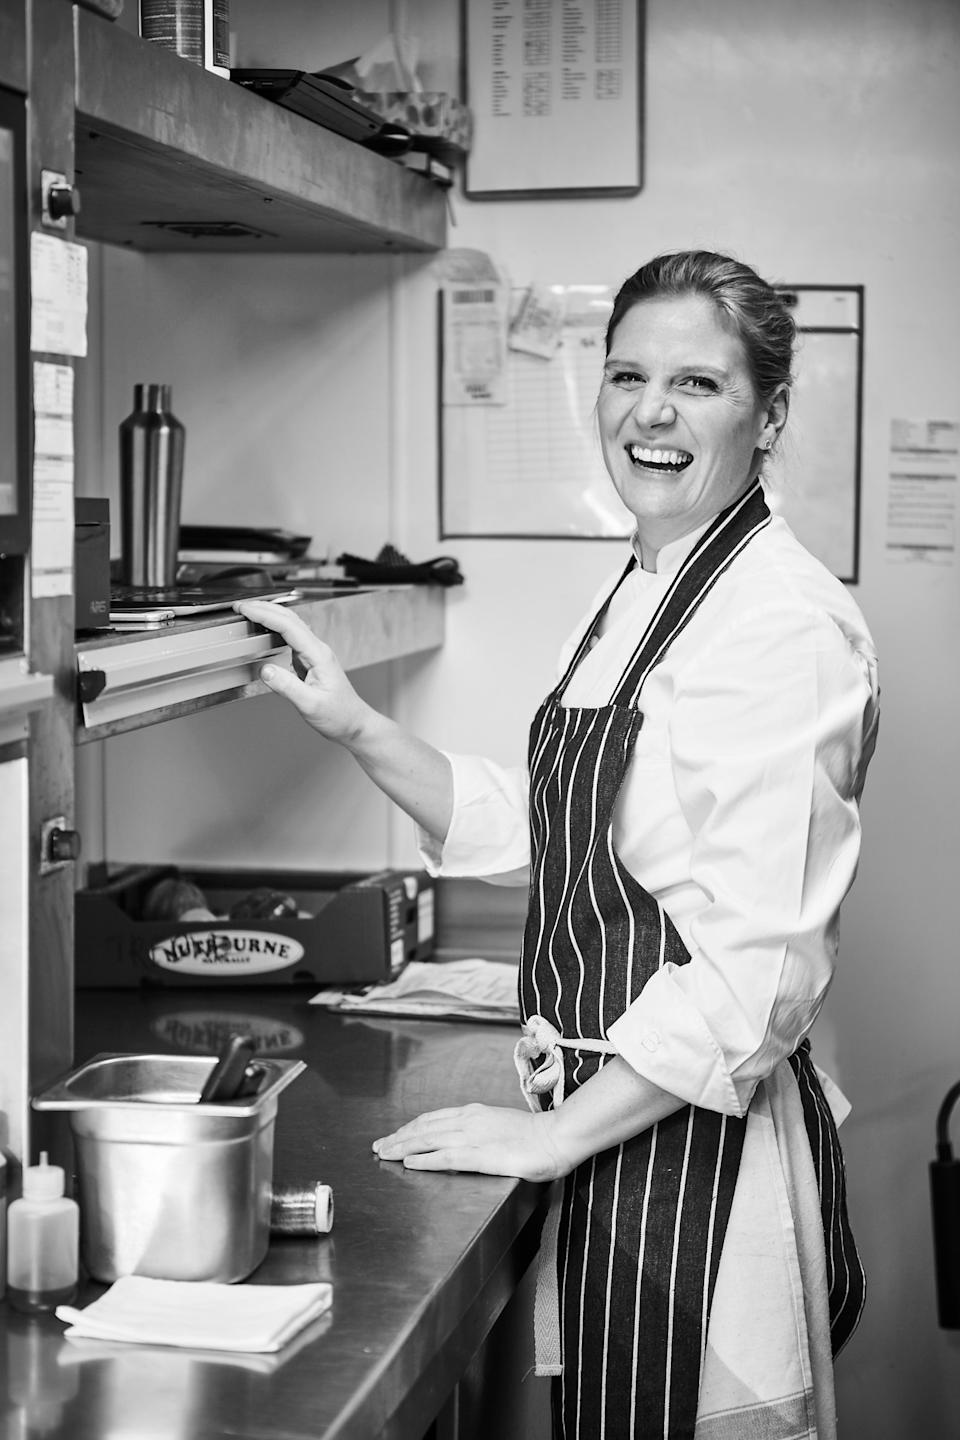 <p>Chantelle Nicholson decided to start a temporary eatery</p>Chantelle Nicholson